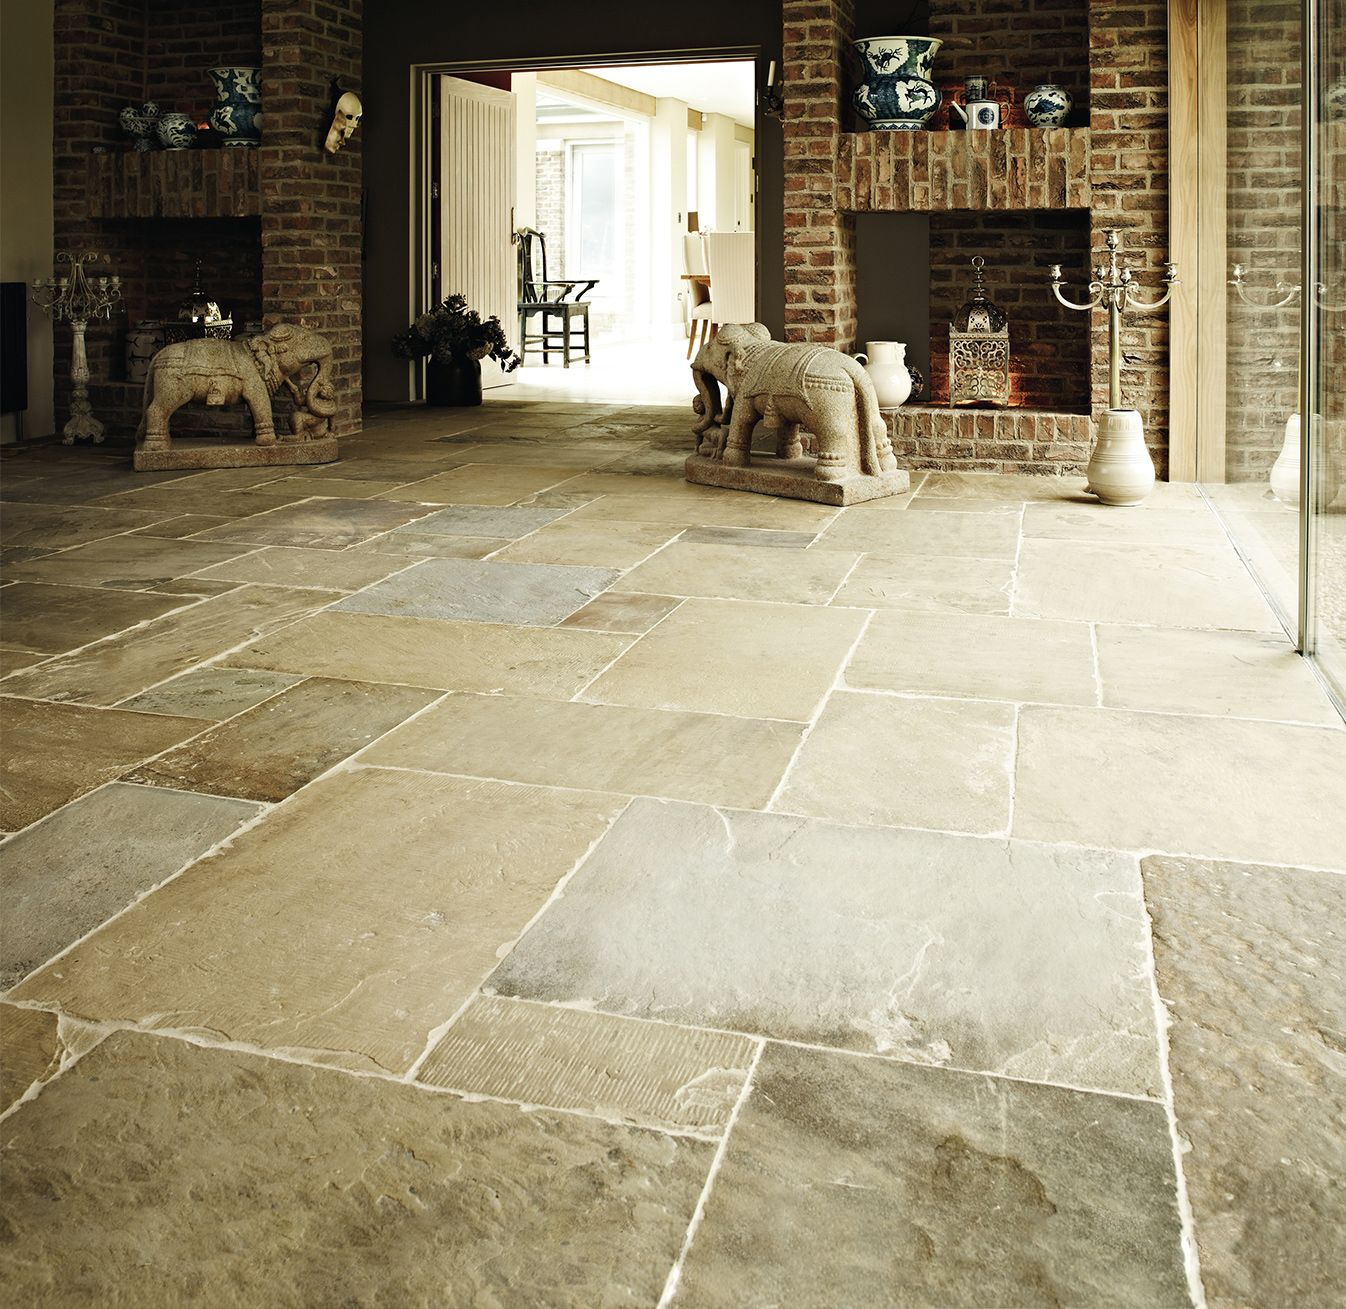 Kitchen Tiles York Flagstone Floor Natural Flagstone Tile Flooring Design